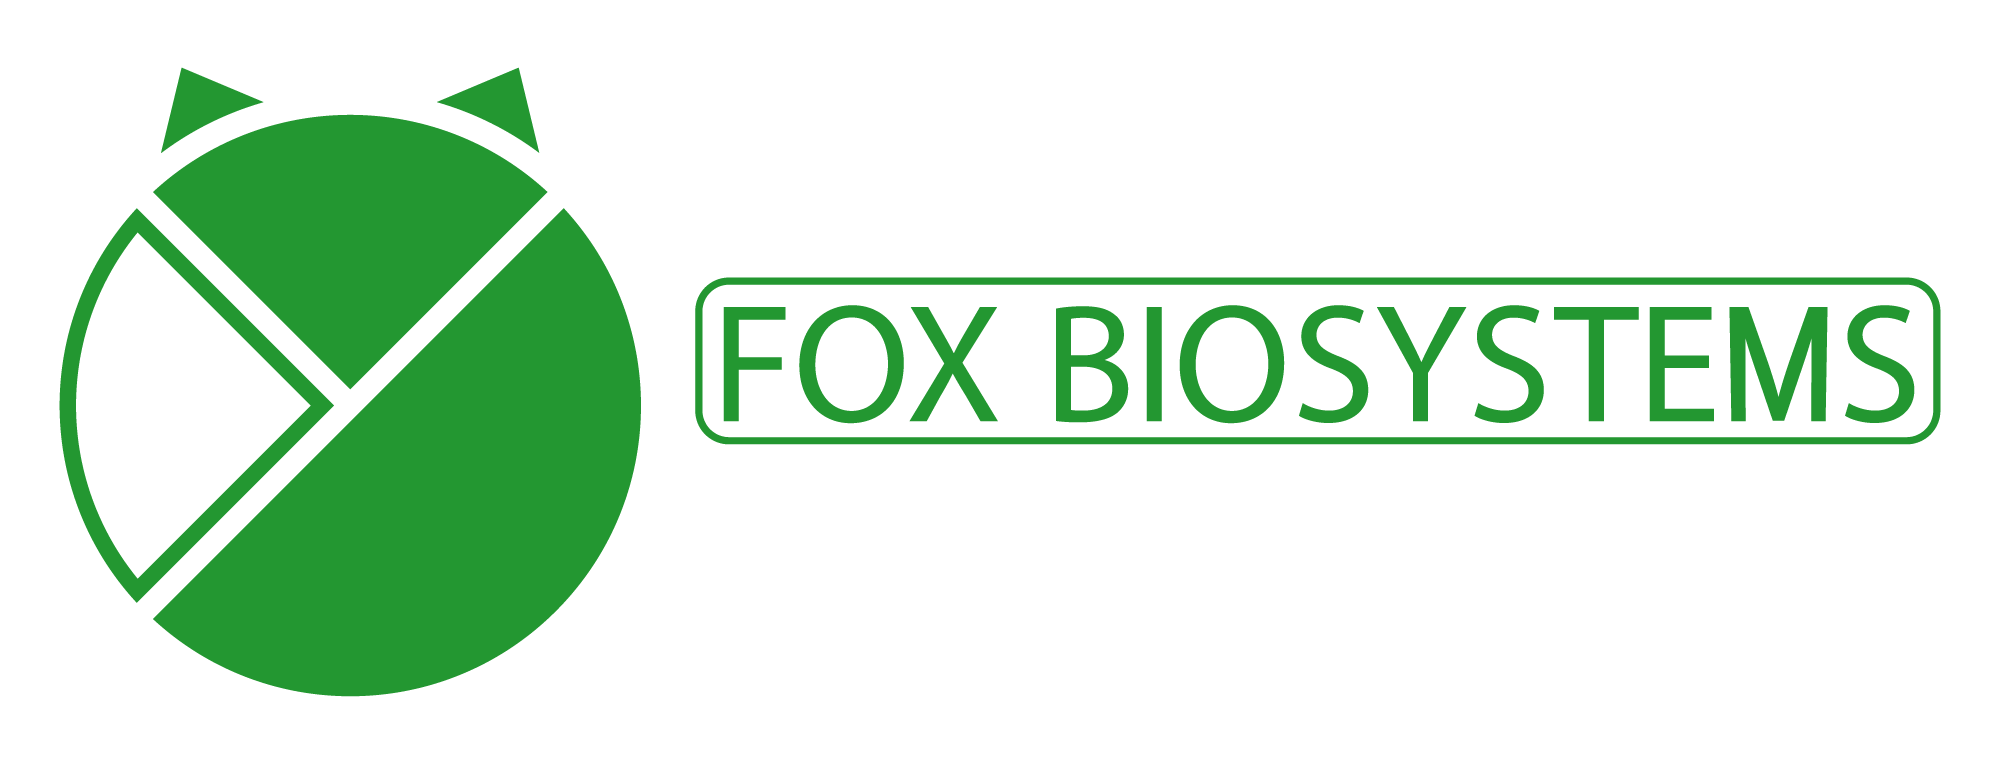 Preview FOx Biosystems